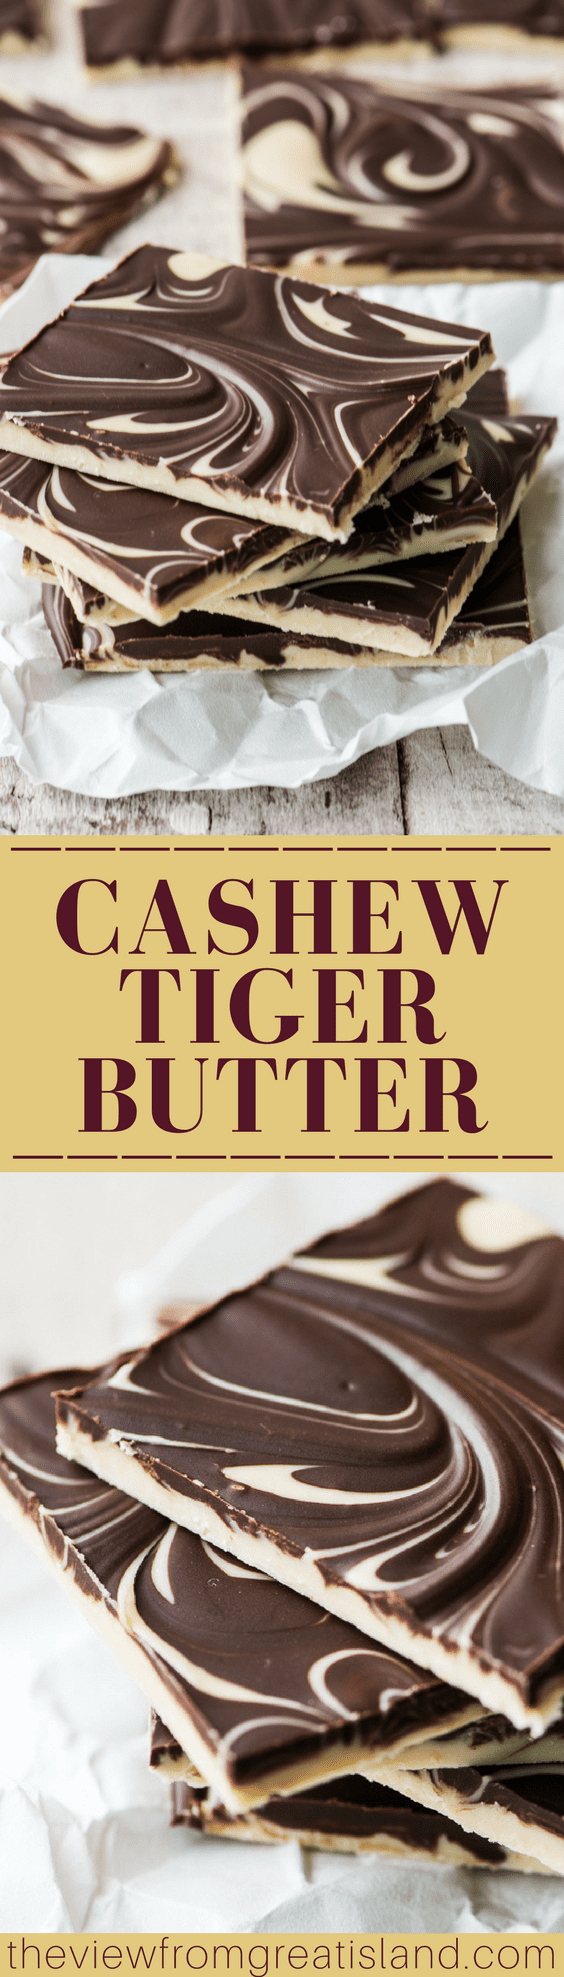 Cashew Tiger Butter ~ this delicious chocolate and cashew butter bark is fun to make and even more fun to eat! Let the kids help you swirl the layers together! #candy #homemadecandy #chocolate #choclatebark #chocolateandpeanutbutter #swirledbark #easydessert #foodgift